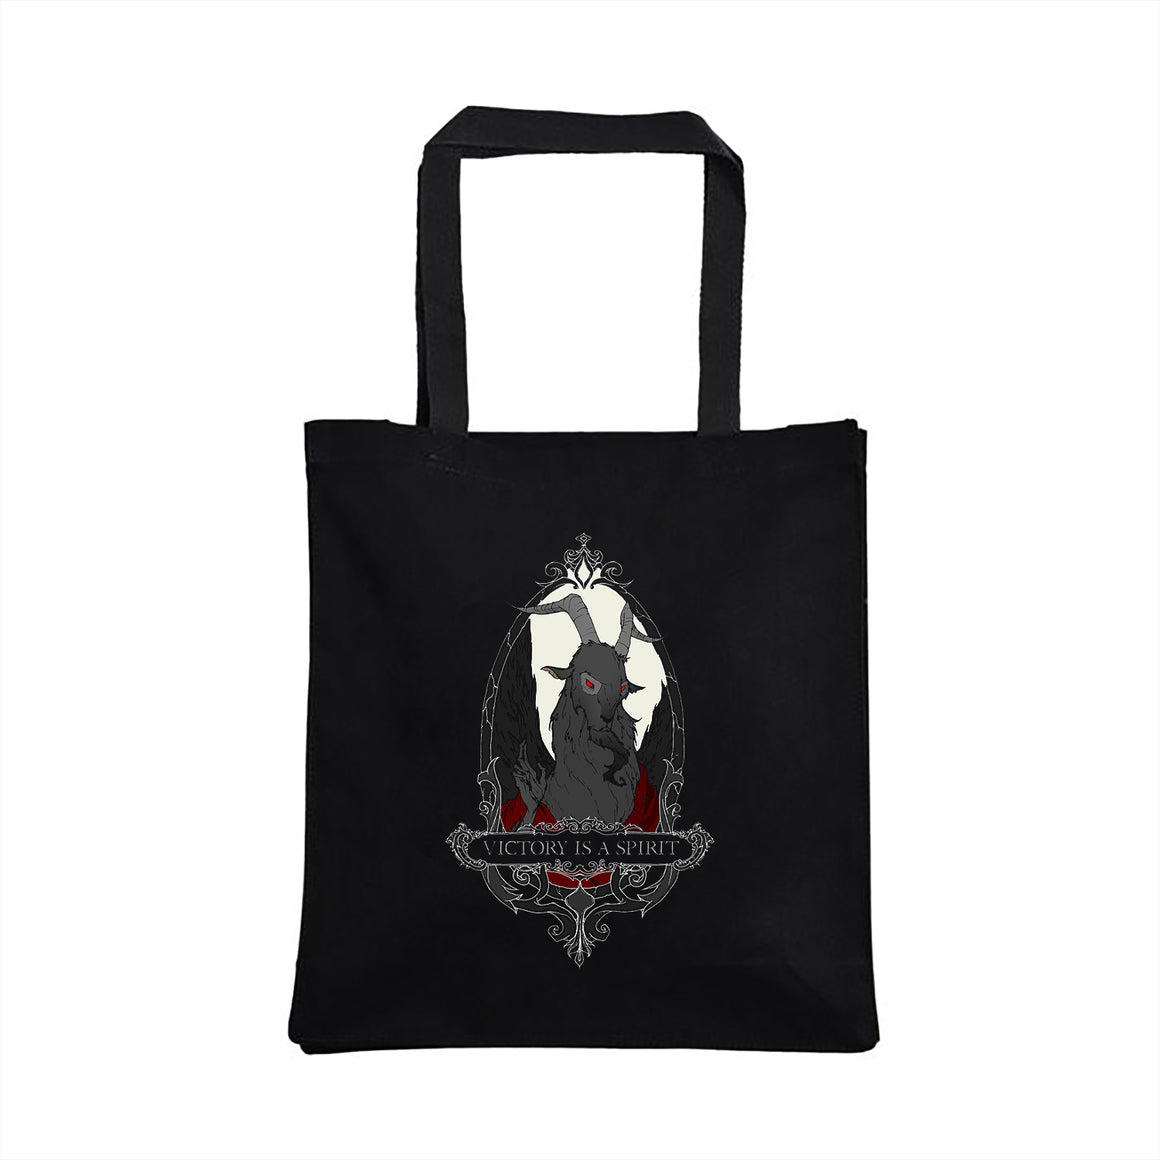 Baphomet tote designed by Abigail Larson.